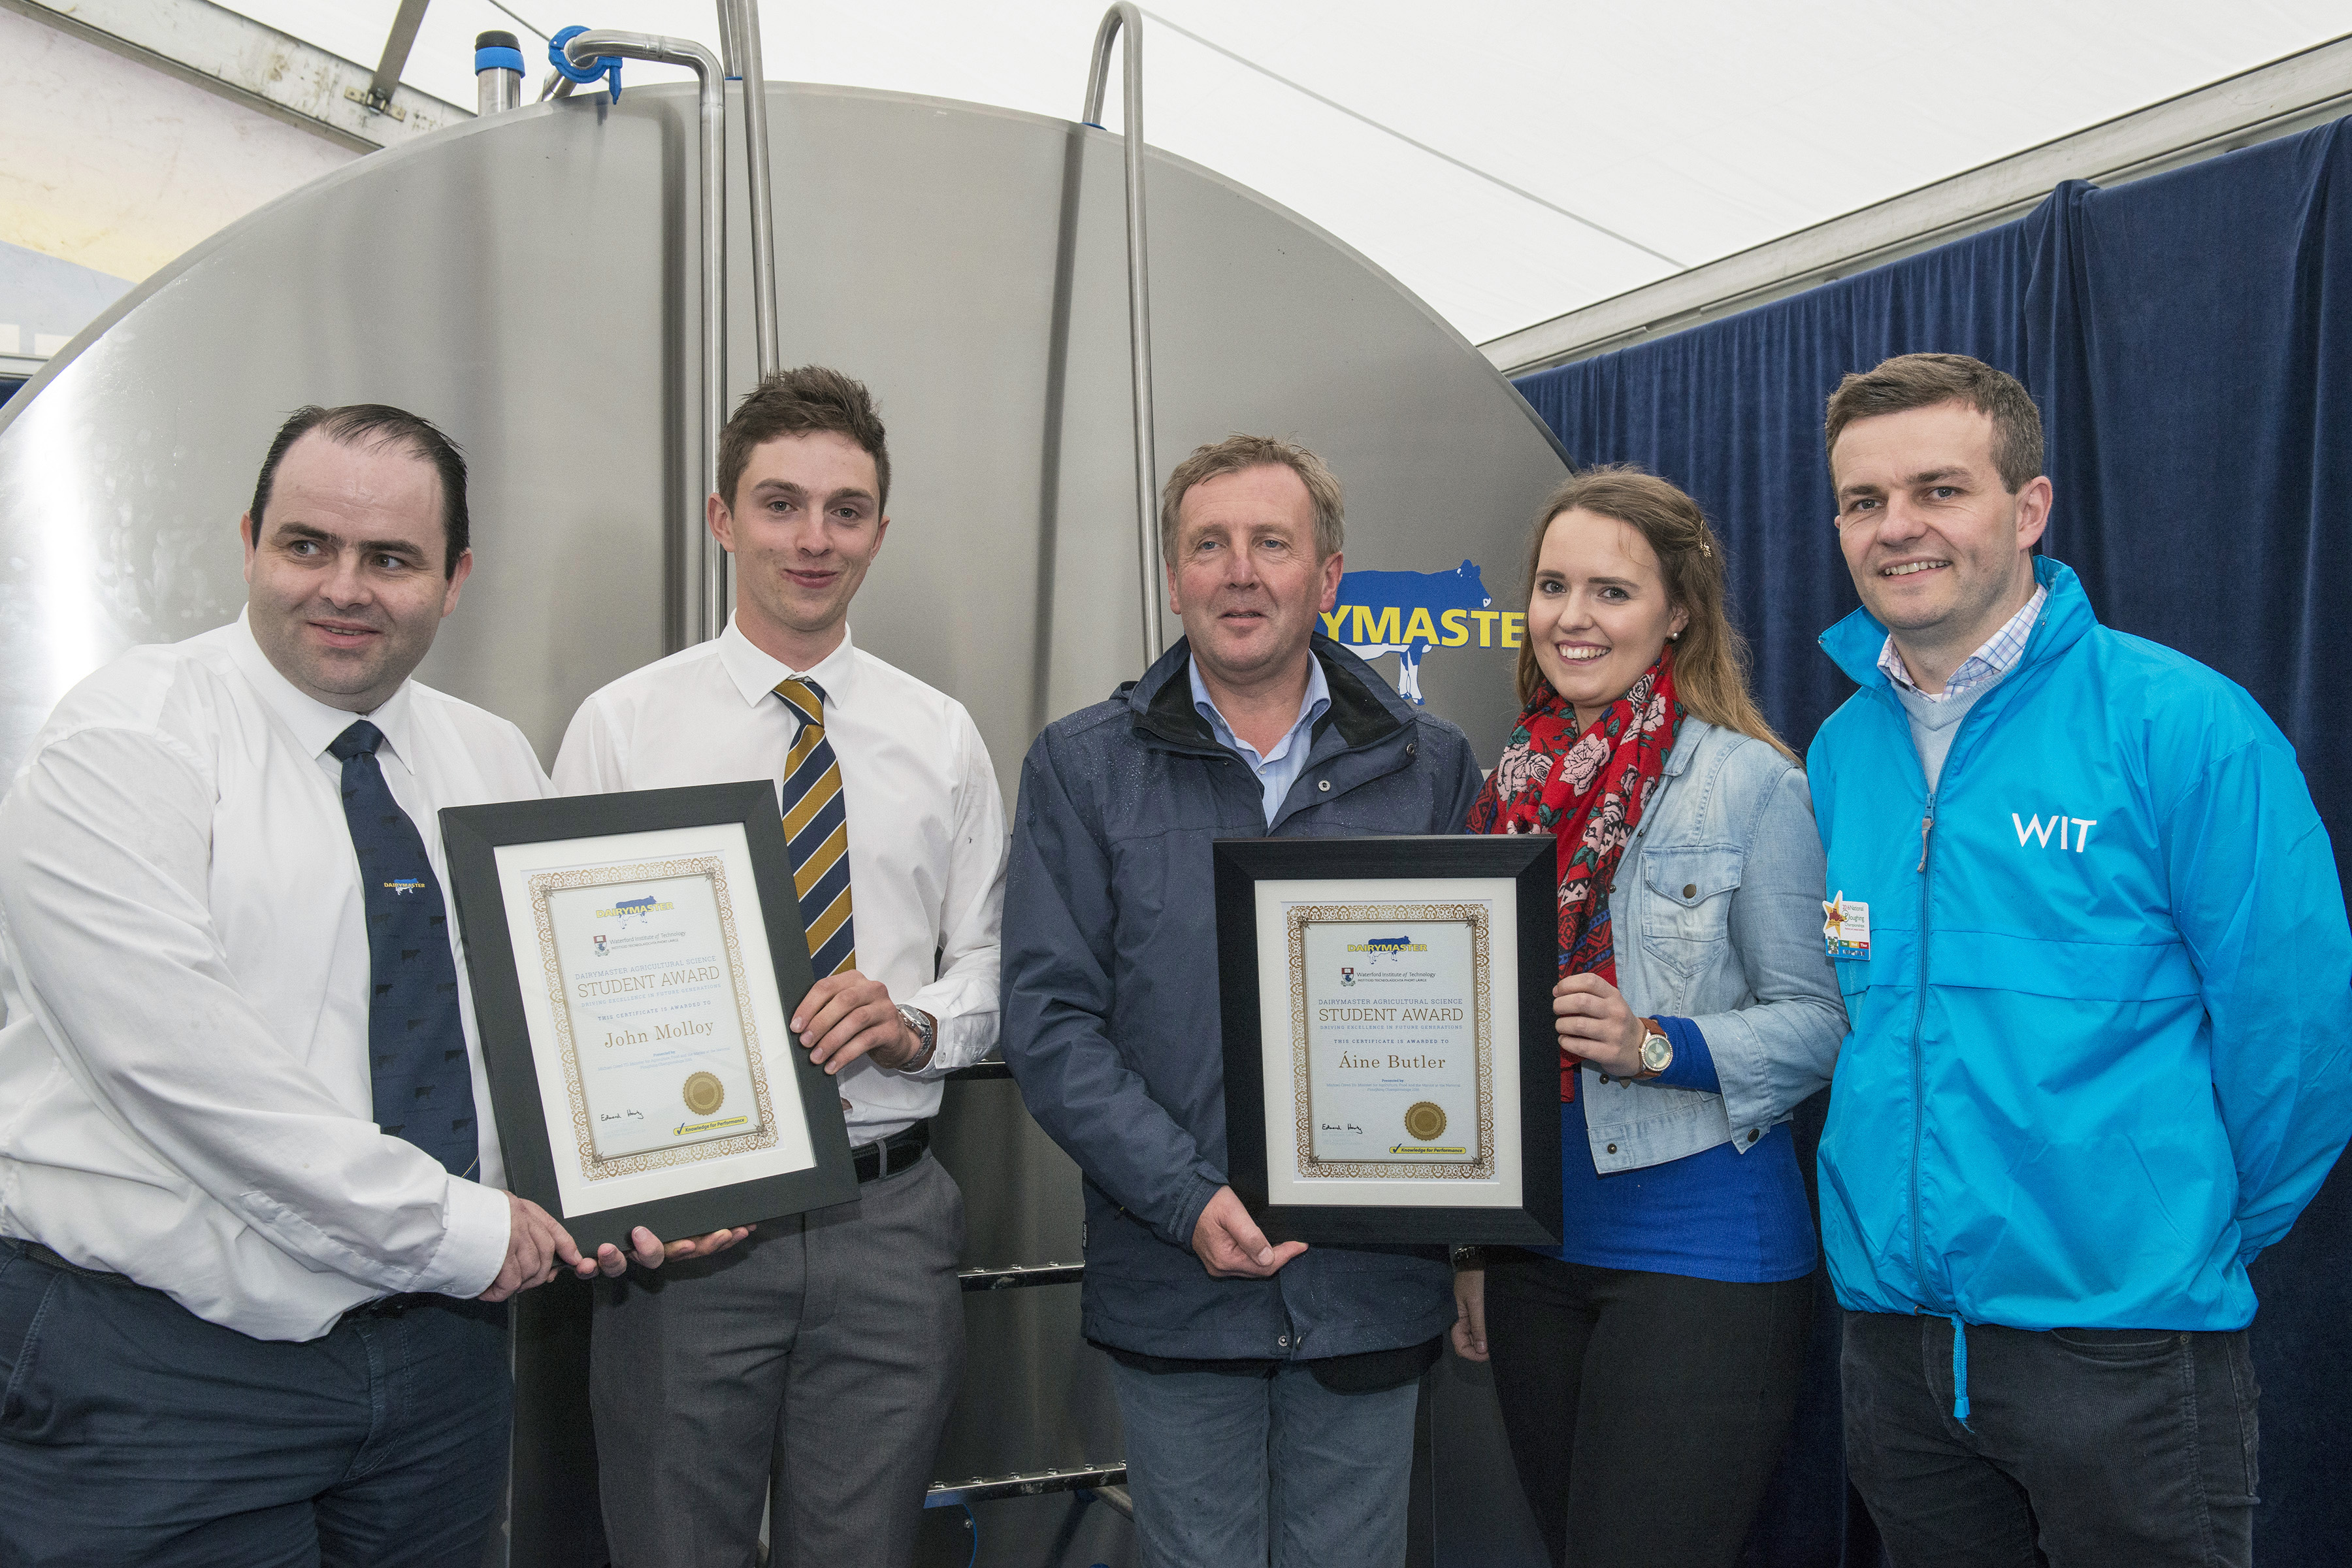 Caption: From left, CEO of Dairymaster, Dr Edmond Harty, John Molloy, Minister for Agriculture, Michael Creed, Áine Butler, and programme leader for the BSc (Hons) in Agricultural Science, Dr Michael Breen.